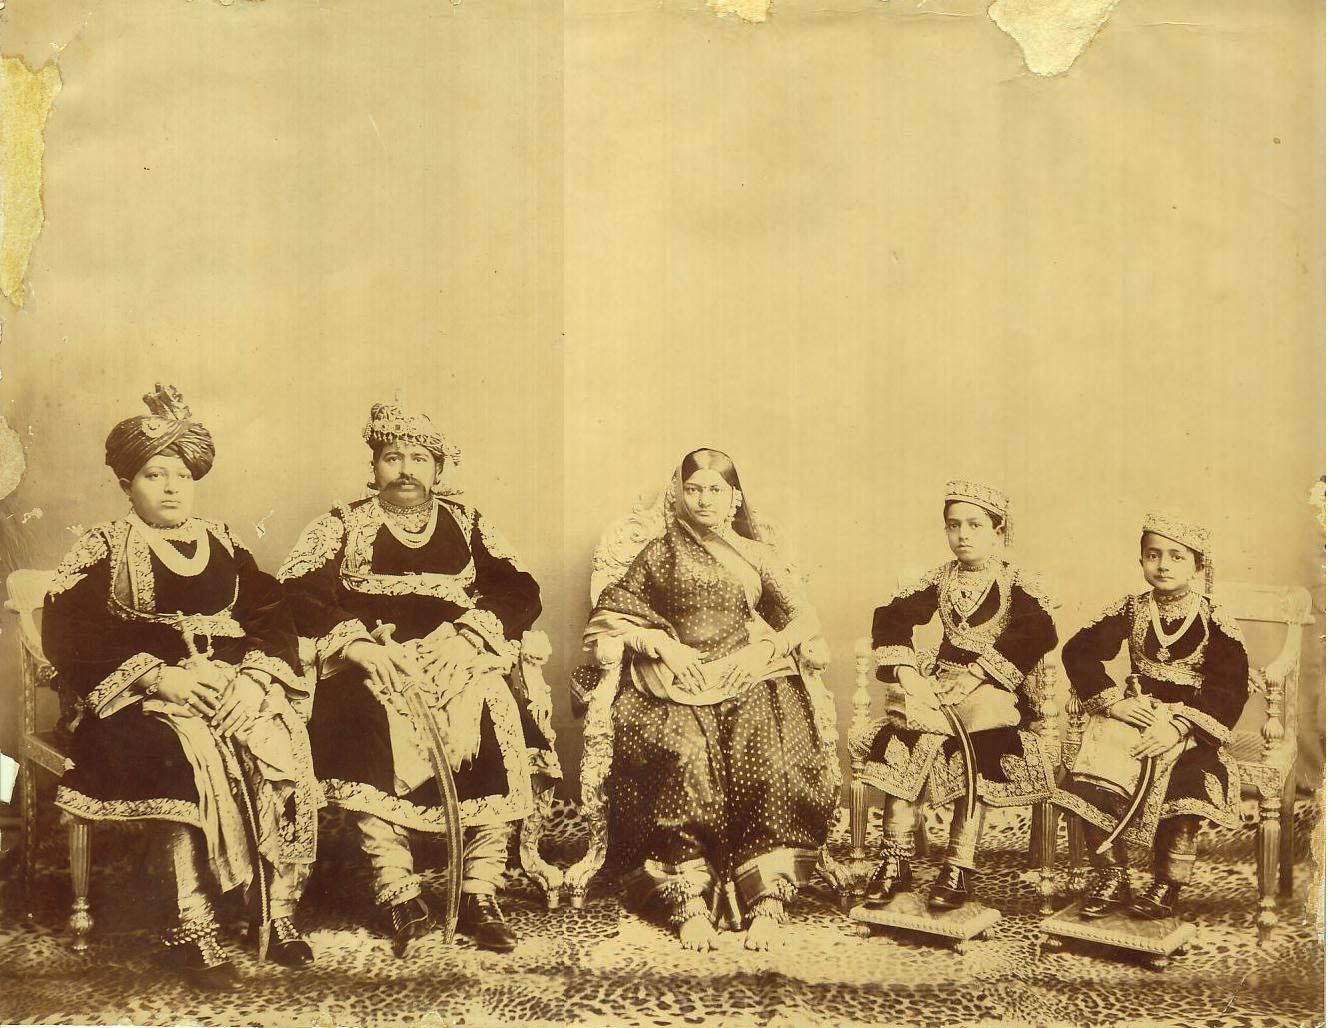 Undated Photograph of an Aristocratic Indian Family